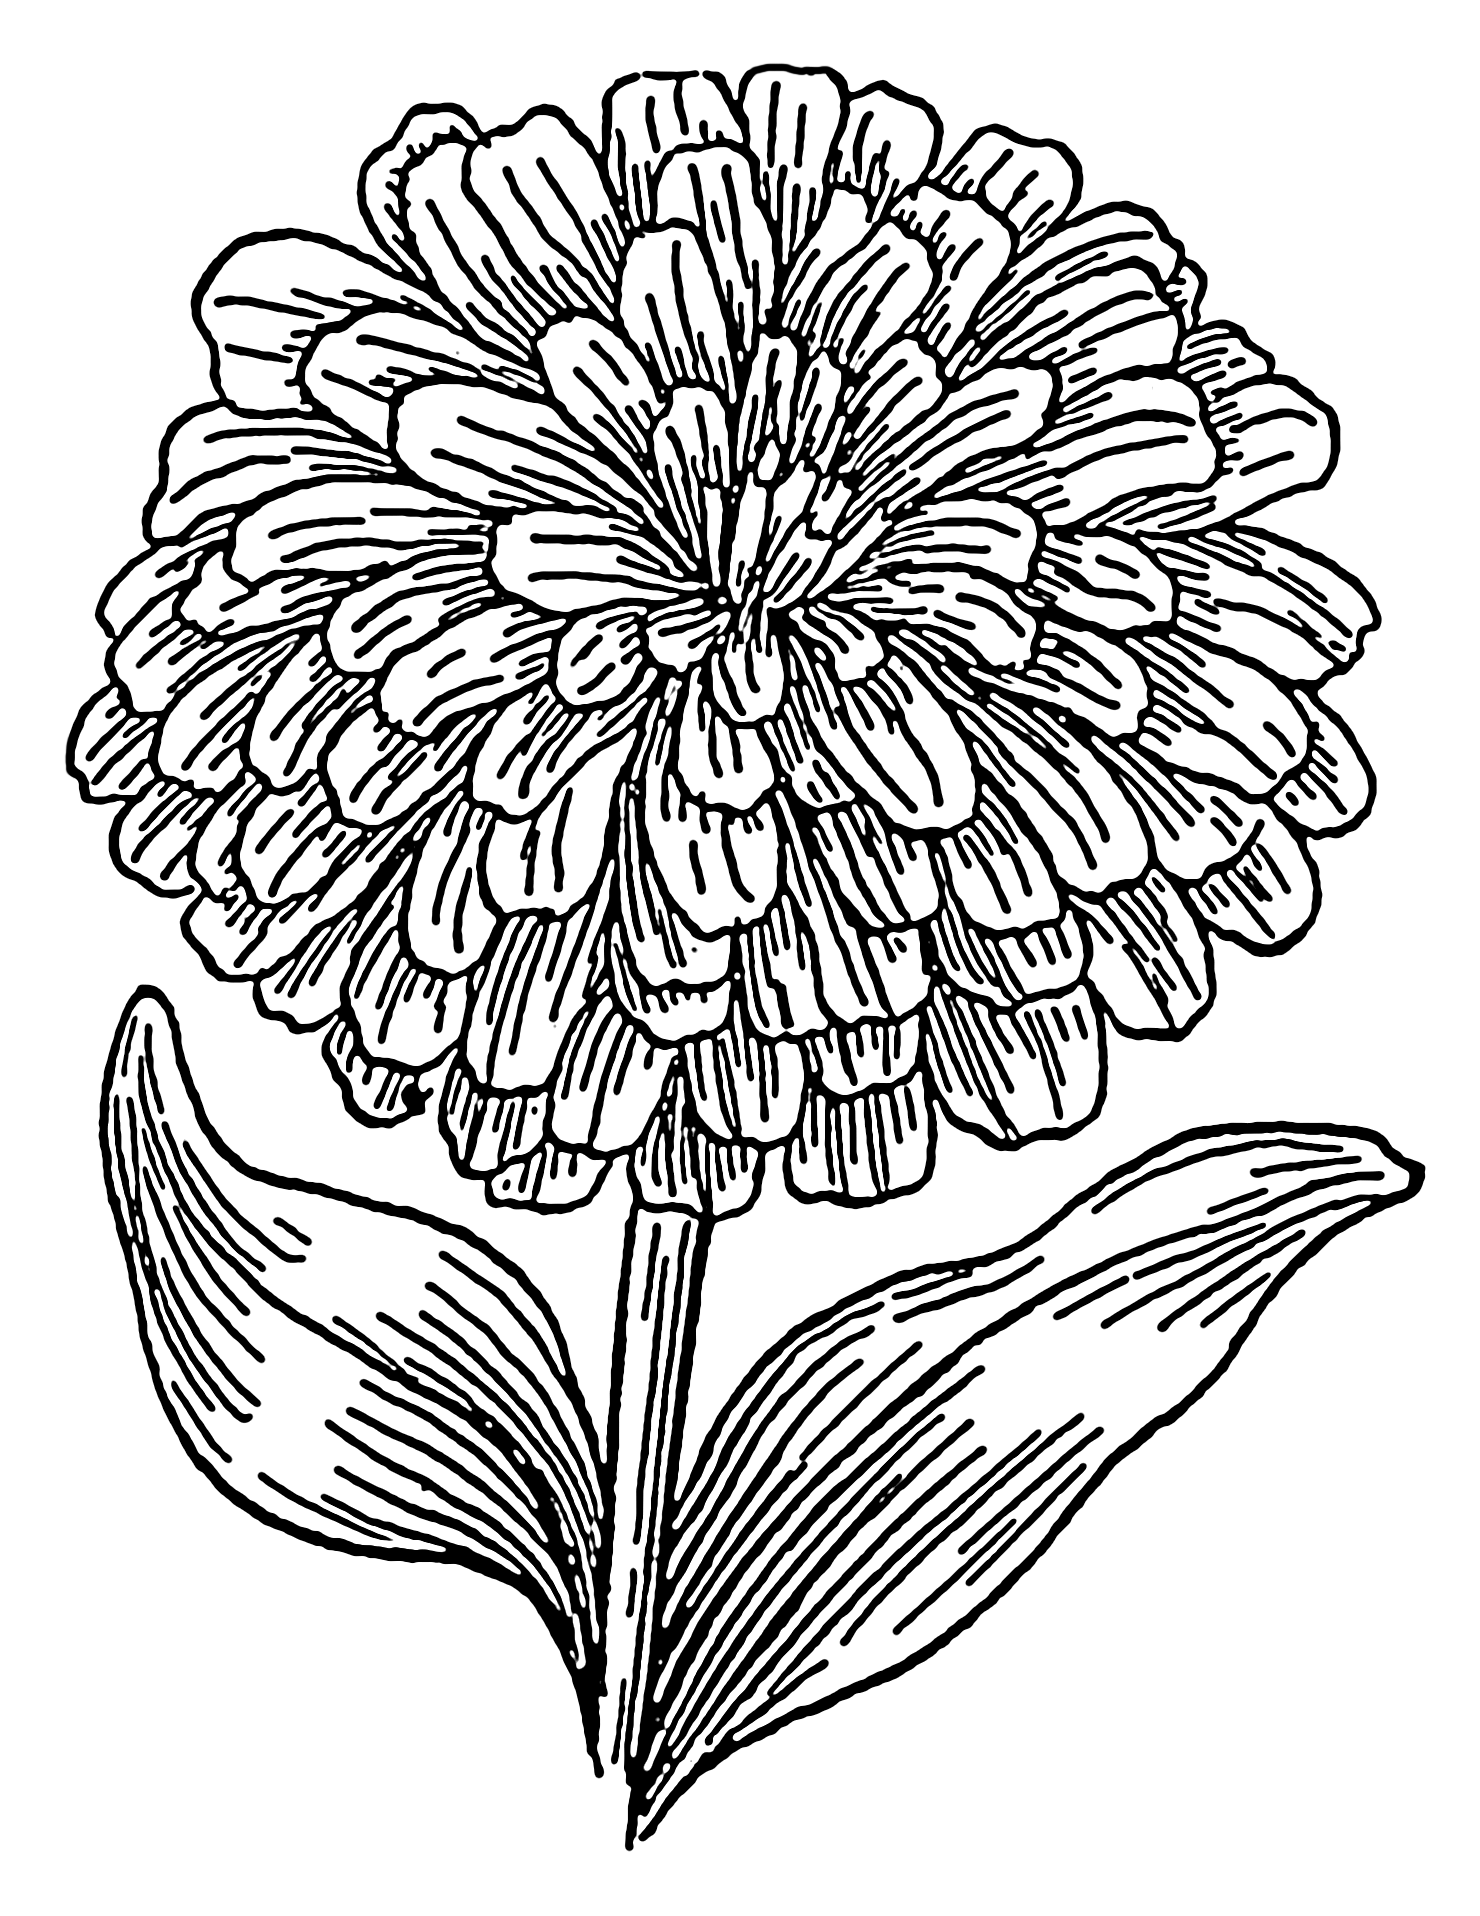 1480x1916 Black And White Hydrangea Drawing